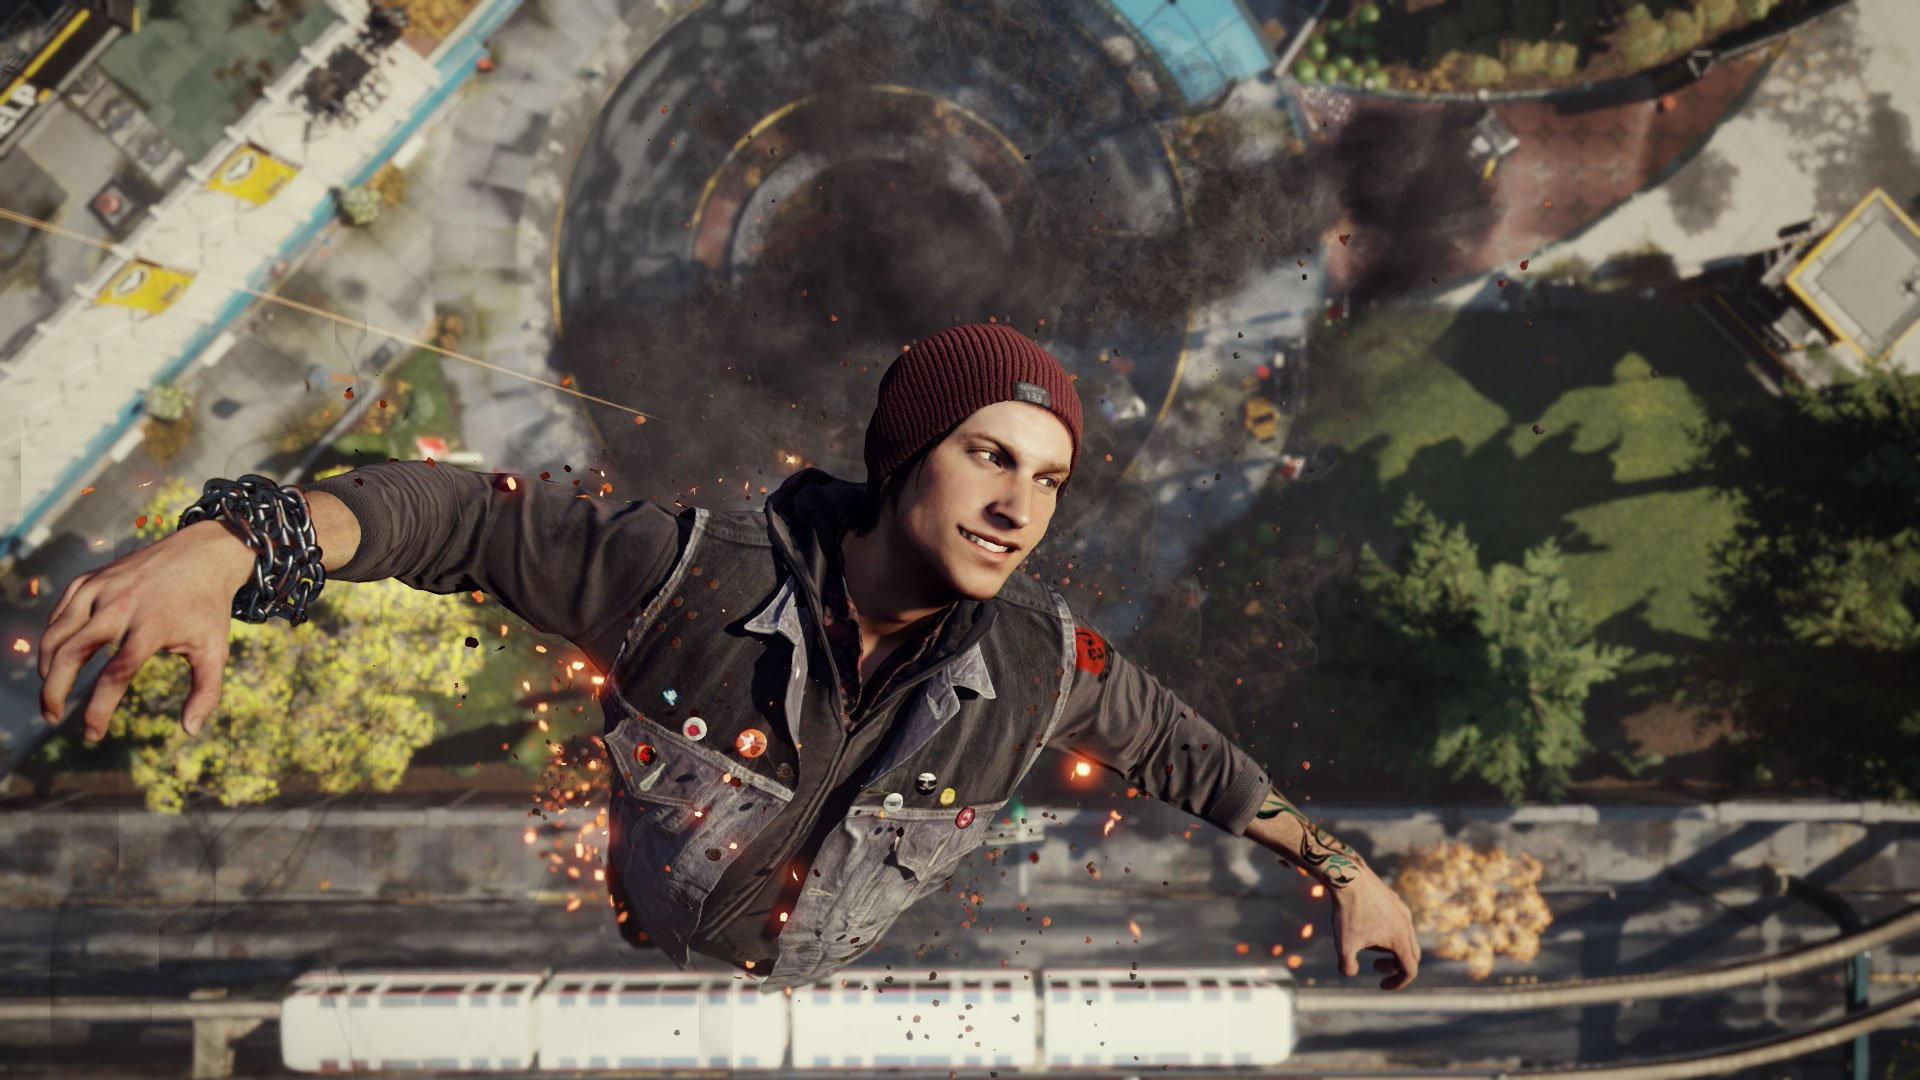 inFamous: Second Son, Child of Light rumored for PS Plus screenshot